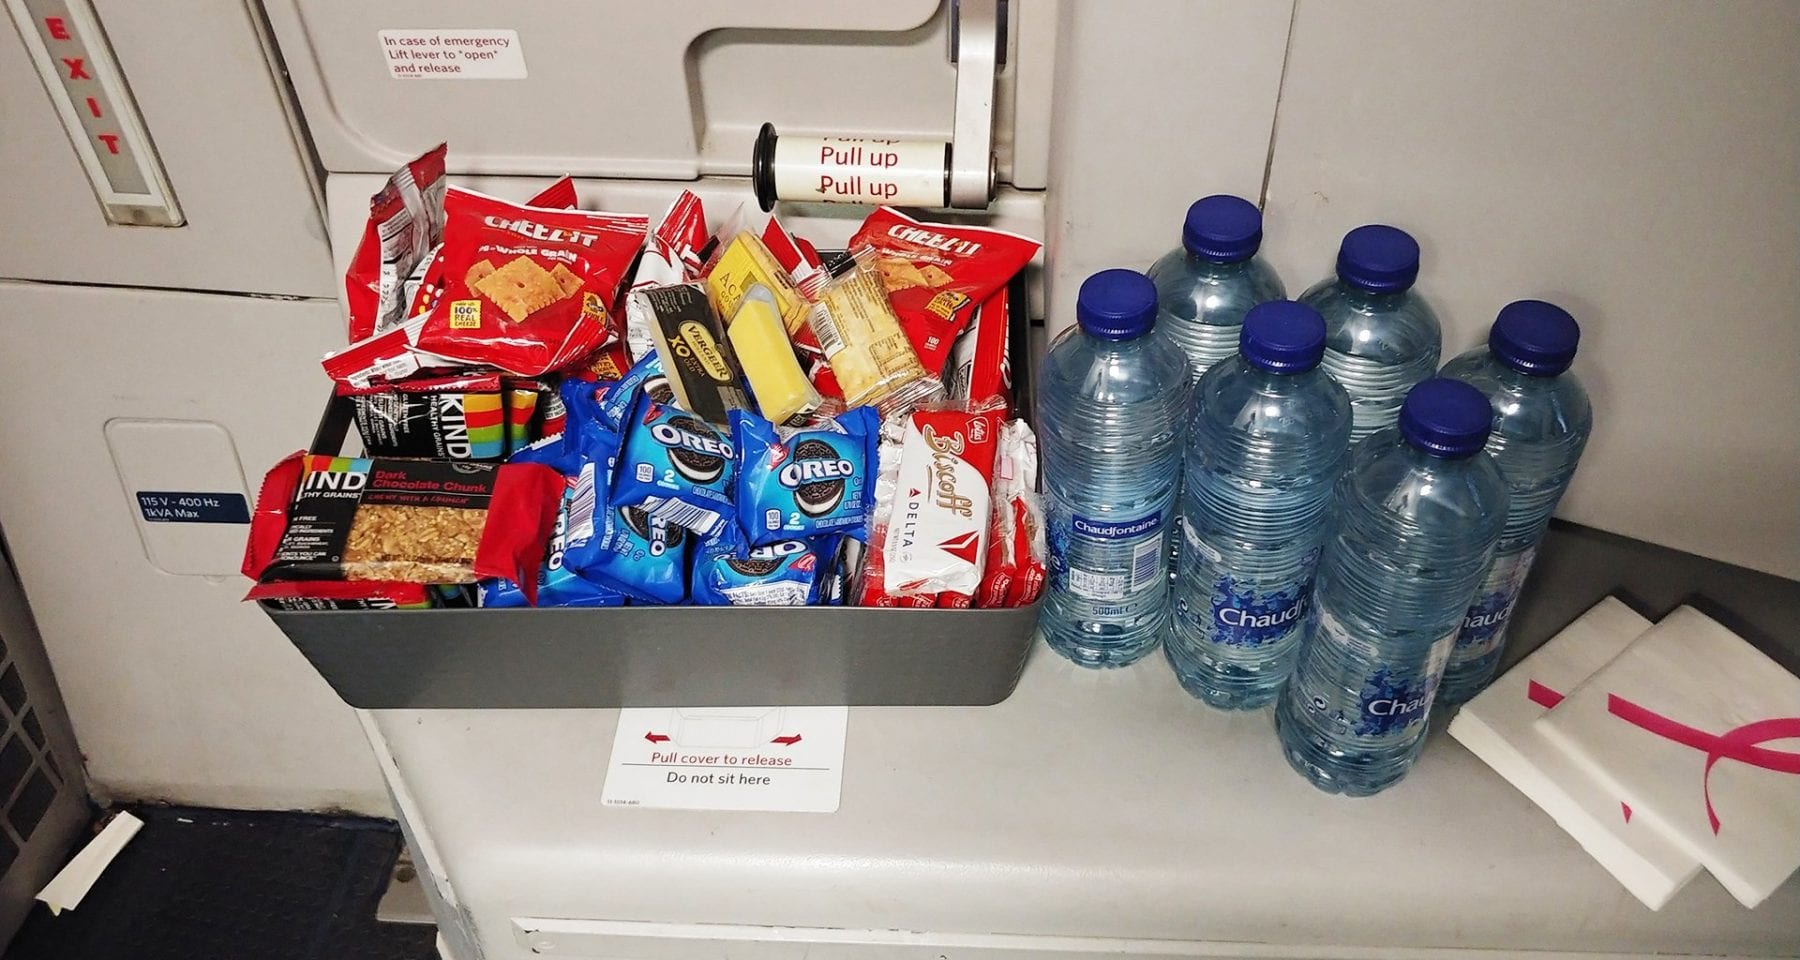 Delta inflight galley snacks